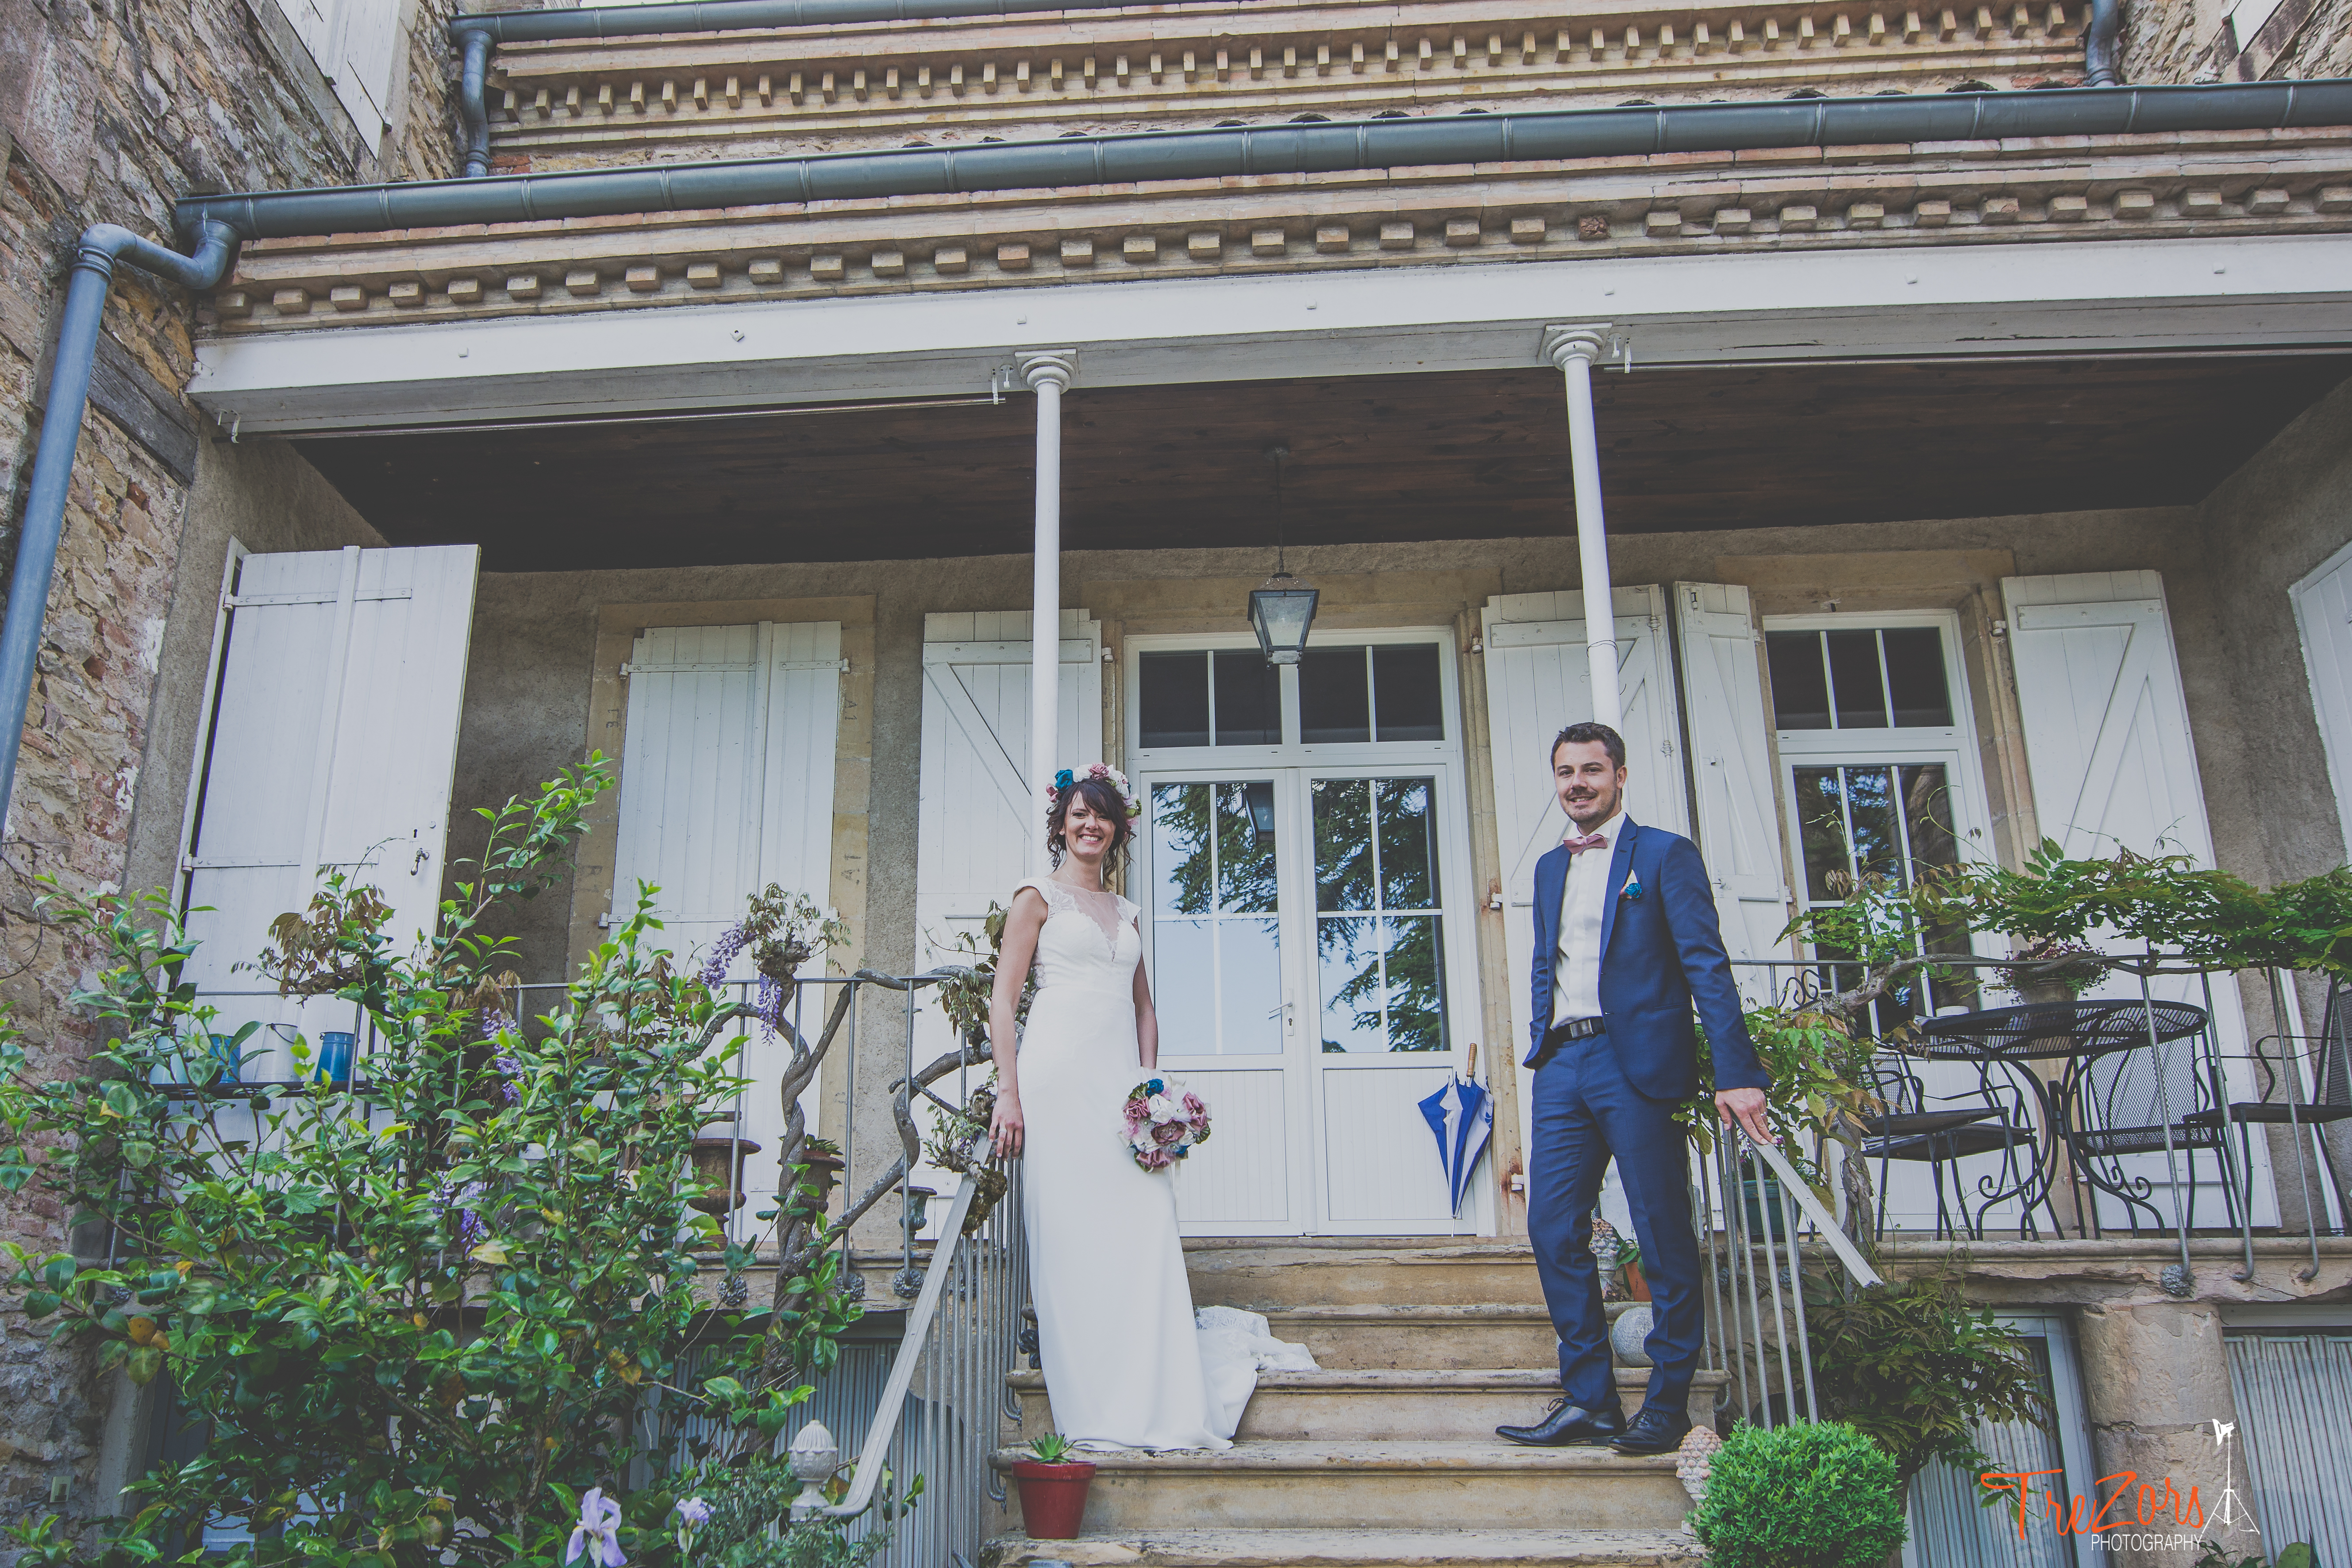 trezors-photography-photographe-professionnel-mariage-inspiration-romantic-chic-made-in-Tarn-214